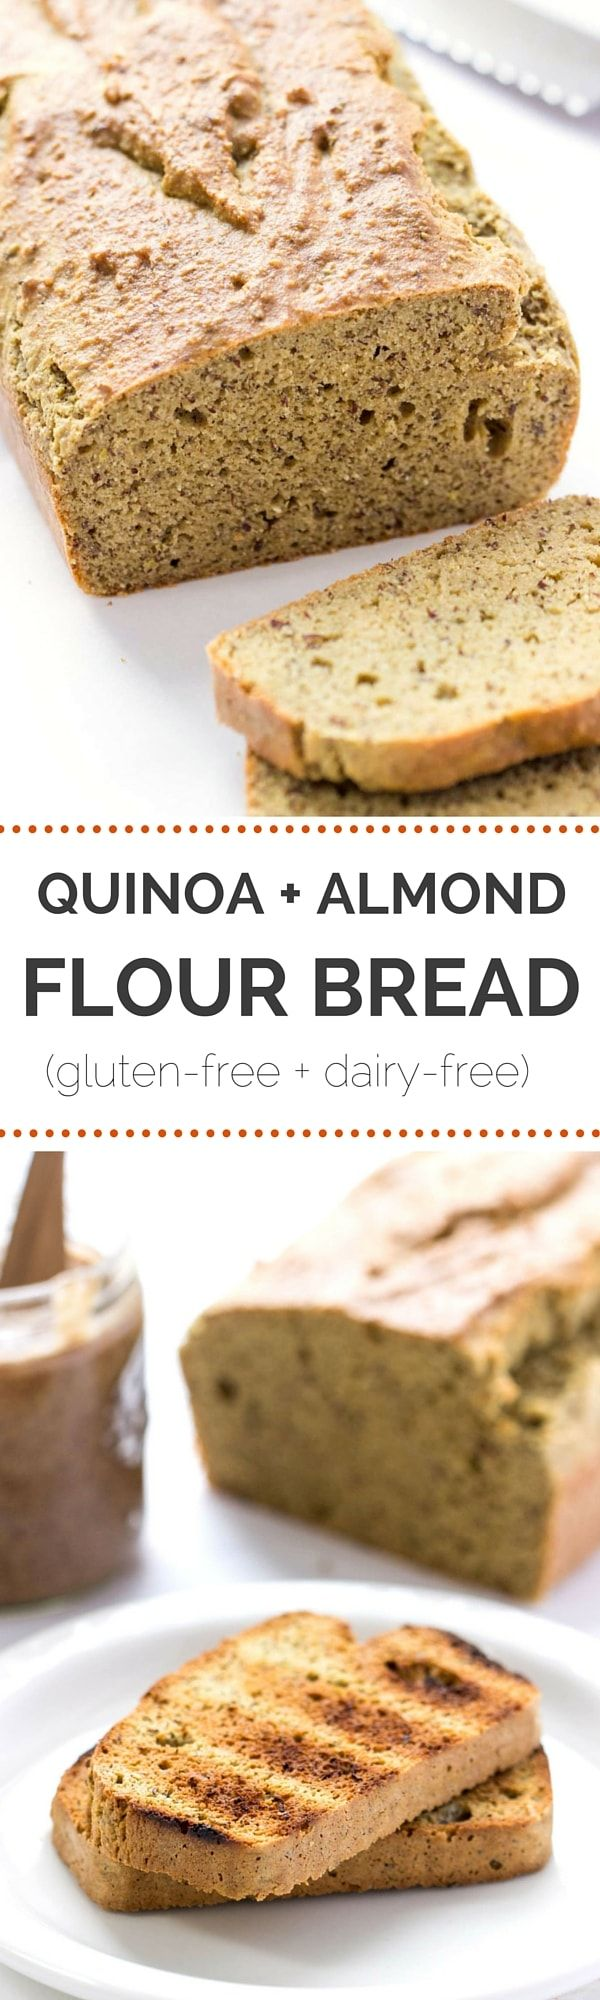 The EASIEST gluten-free bread you'll ever make -- a quinoa almond flour bread uses no yeast, bakes in 30 minutes, is made in one bowl AND it tastes amazing!